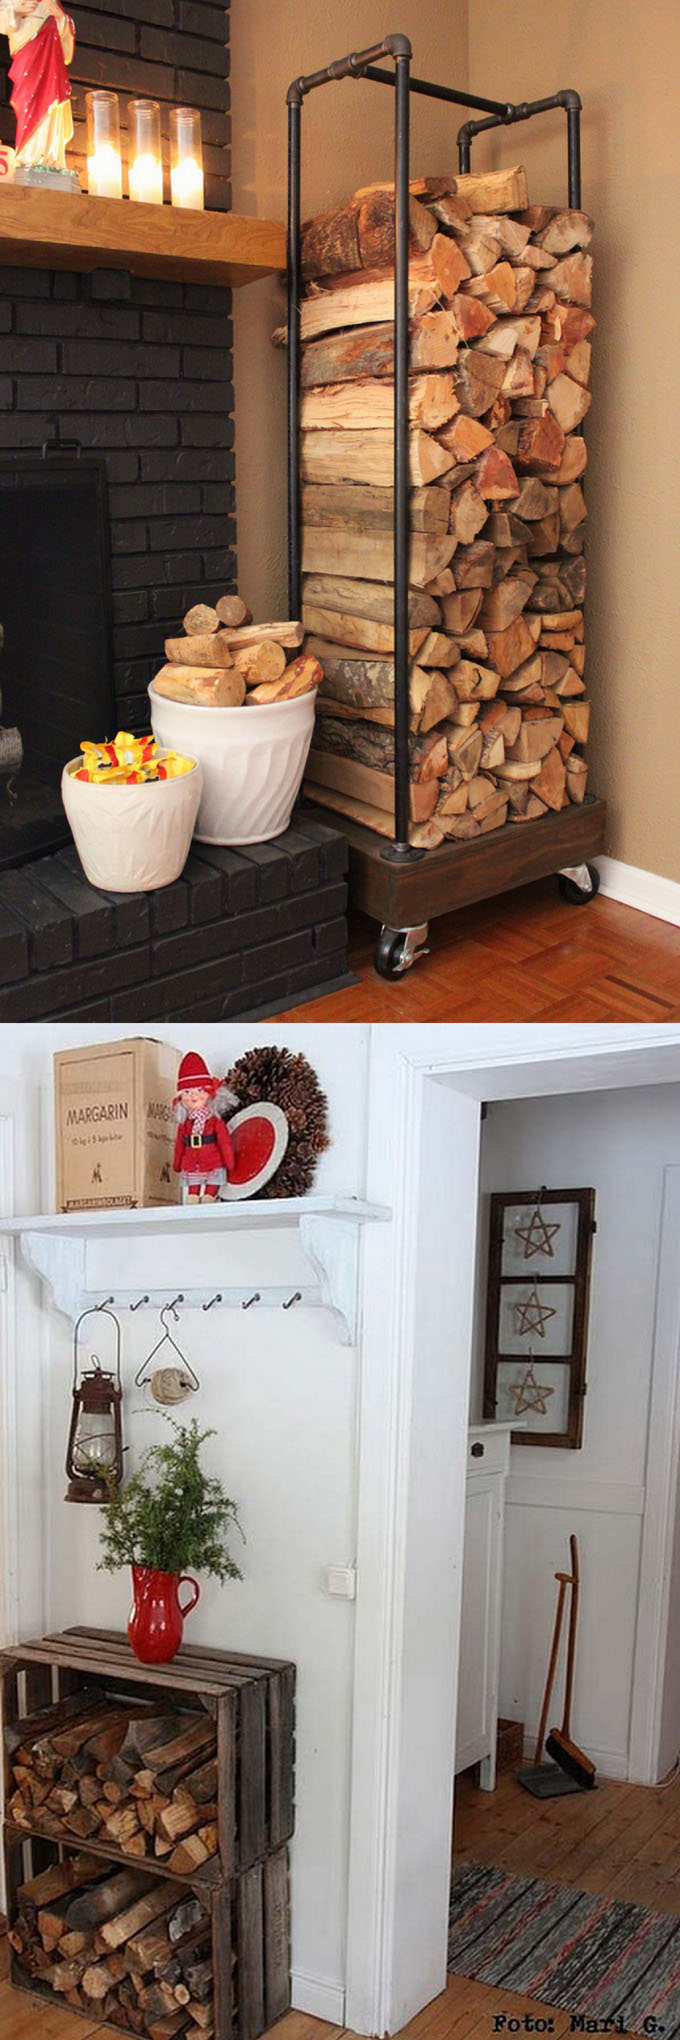 Now when the time is coming for some cozy crackling fire, here are the 15 firewood storage and creative DIY firewood rack ideas for indoors and outdoors.